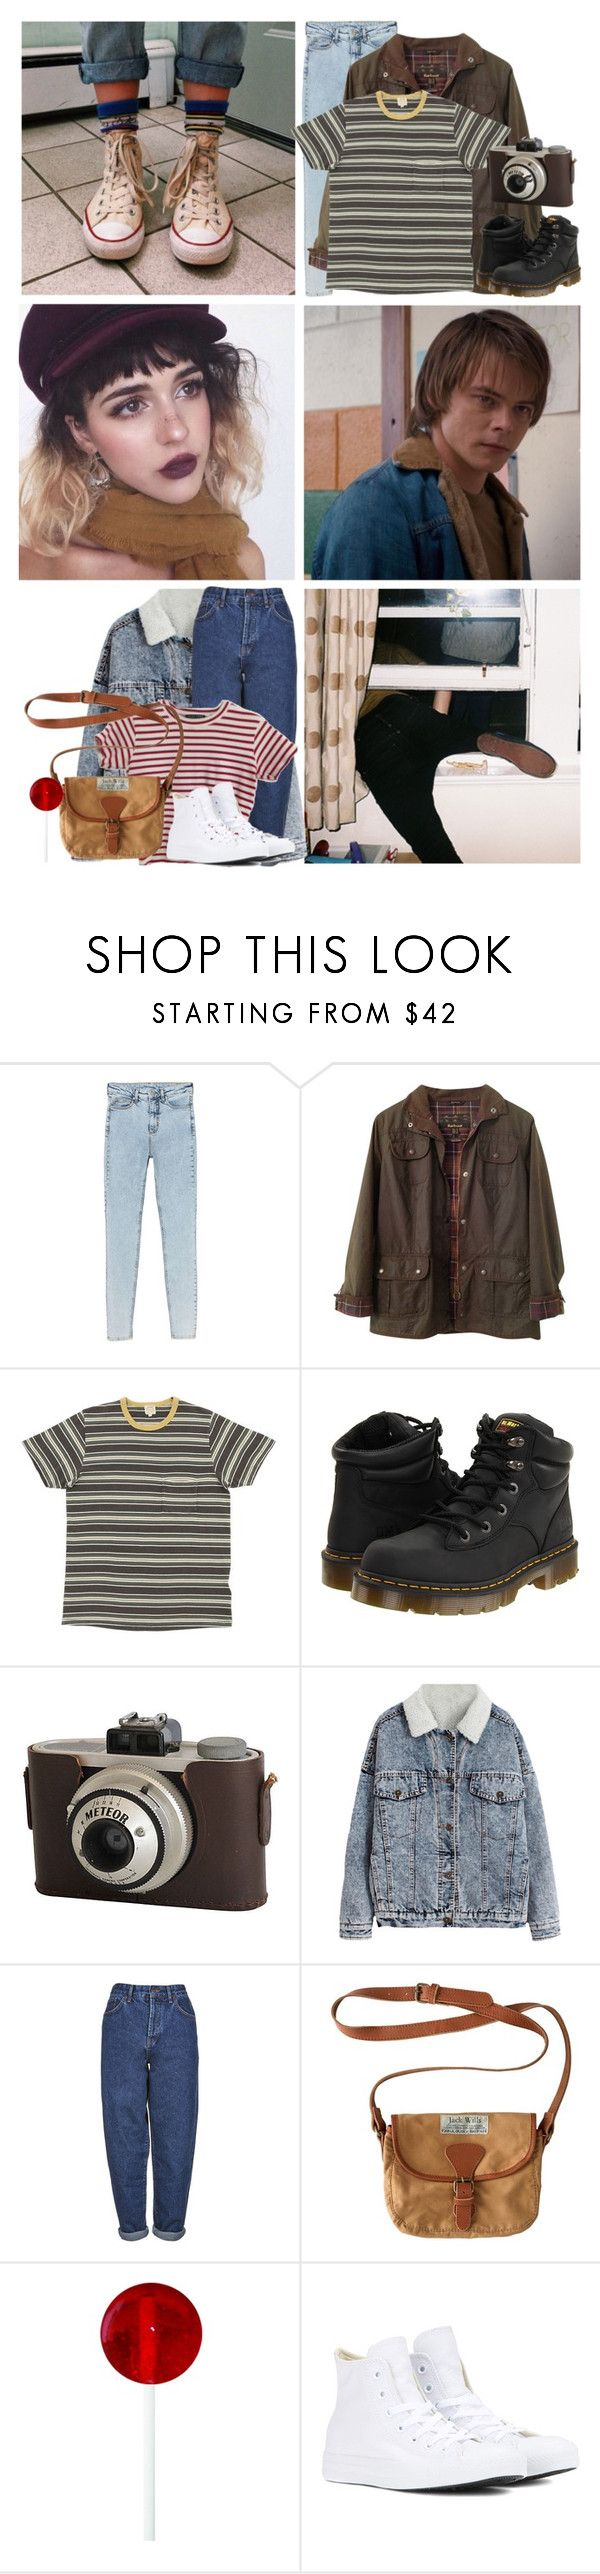 """""""• STRANGER THINGS HAVE HAPPENED •"""" by daddys-little-angxl ❤ liked on Polyvore featuring American Eagle Outfitters, Monki, Barbour, Dr. Martens, Boutique, Jack Wills, Converse, strangerthingsoc and meetthelittleangxls"""